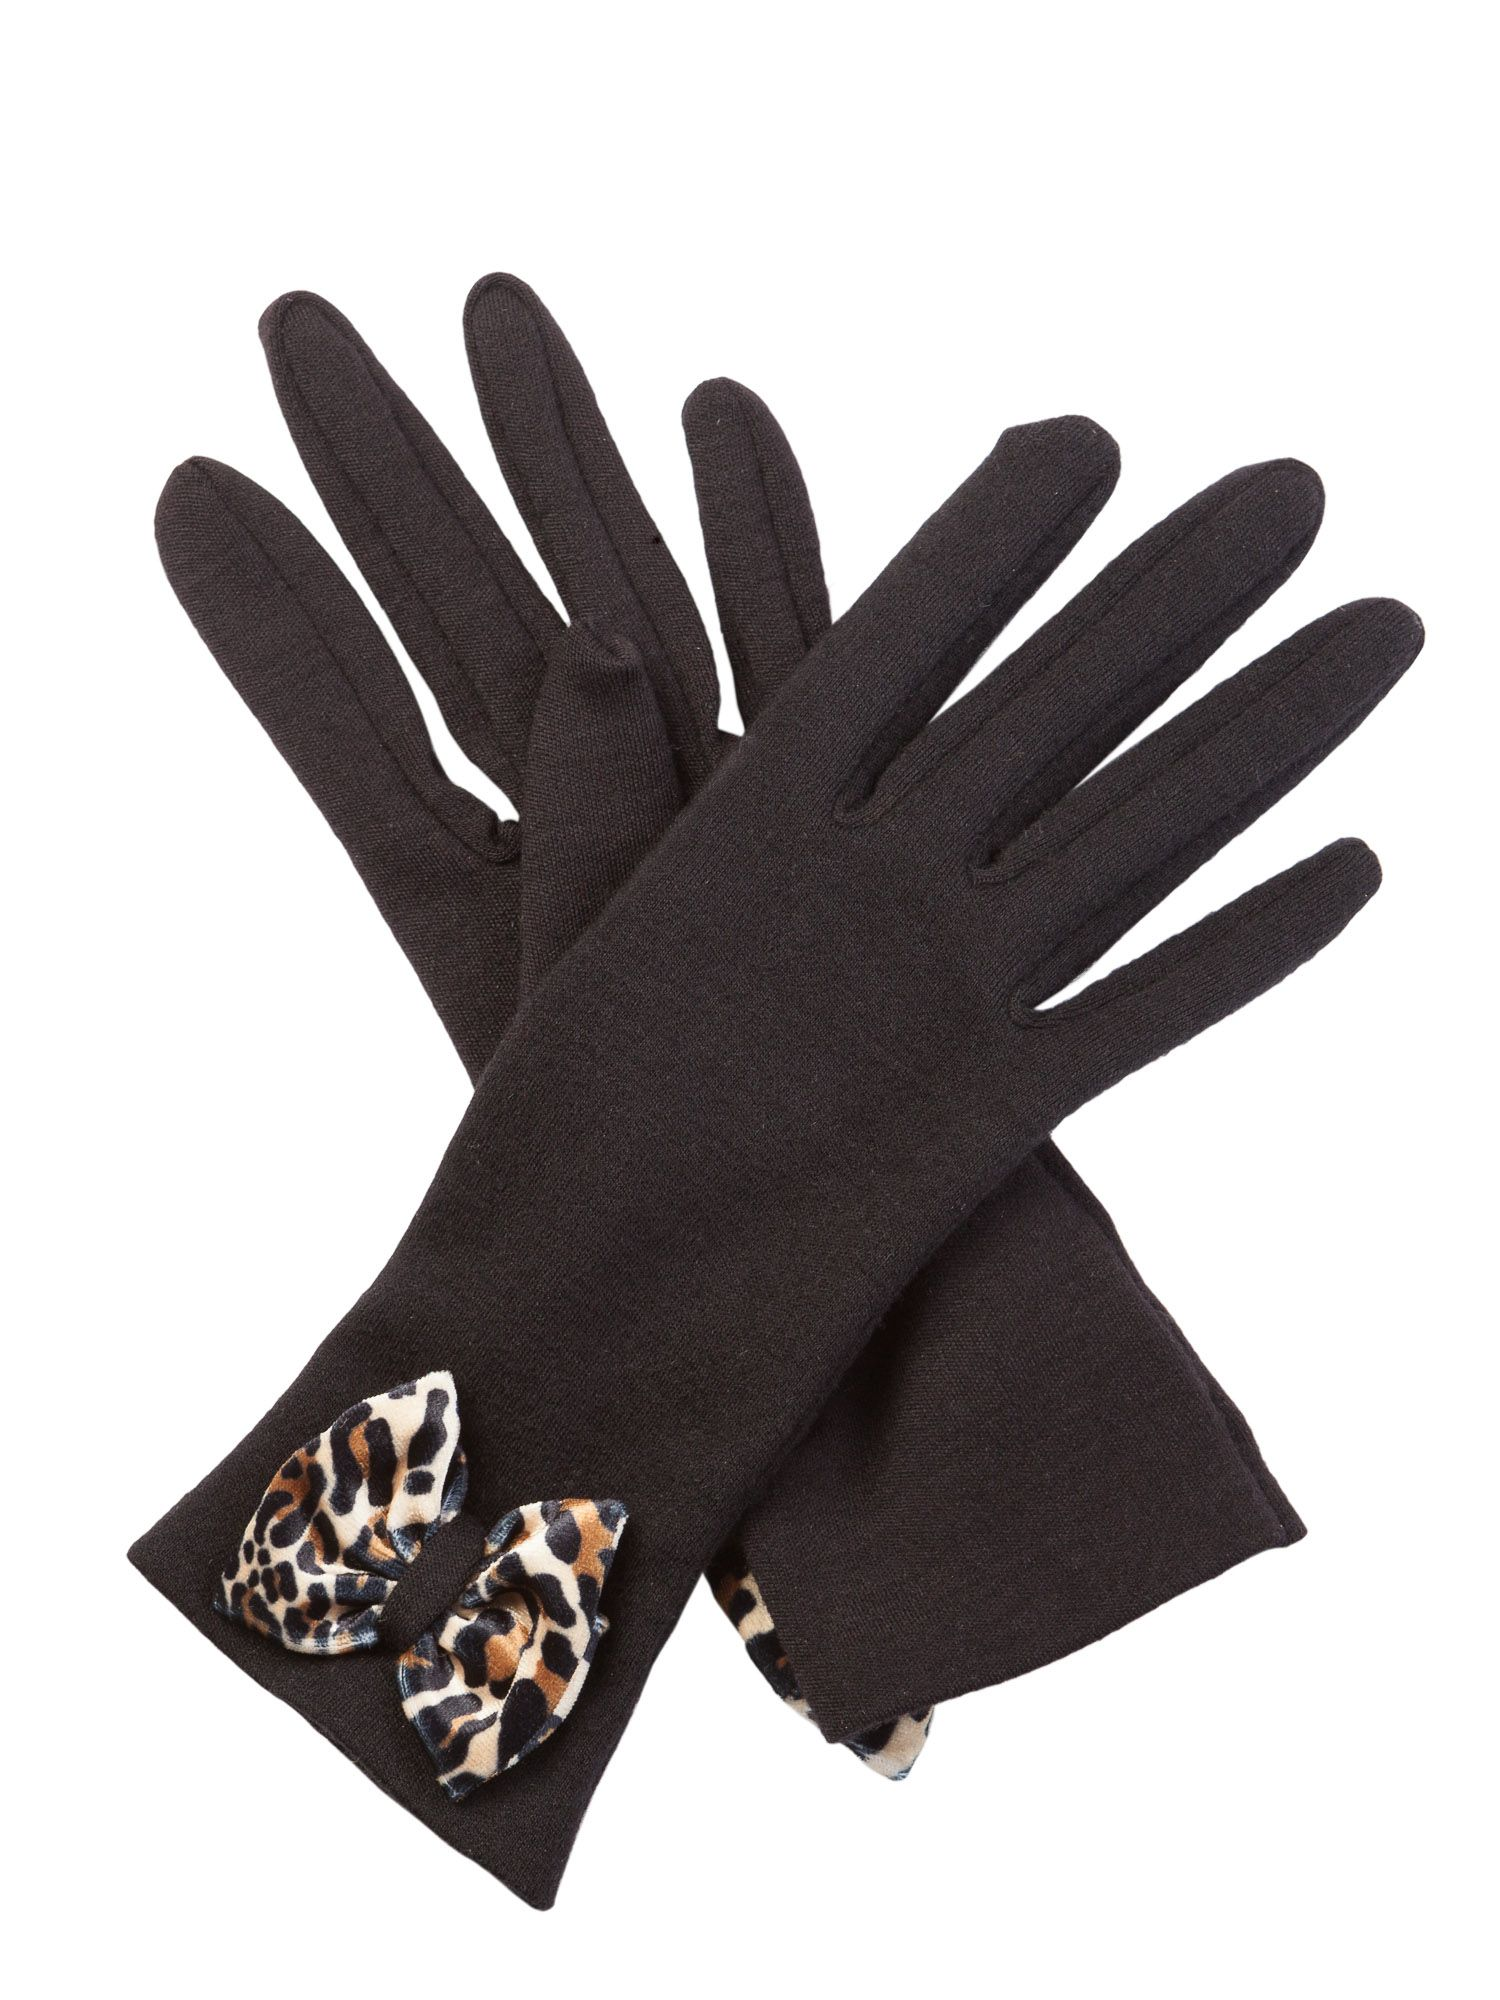 Vintage Style Gloves Cornelia James Penelope Wool Gloves £70.00 AT vintagedancer.com